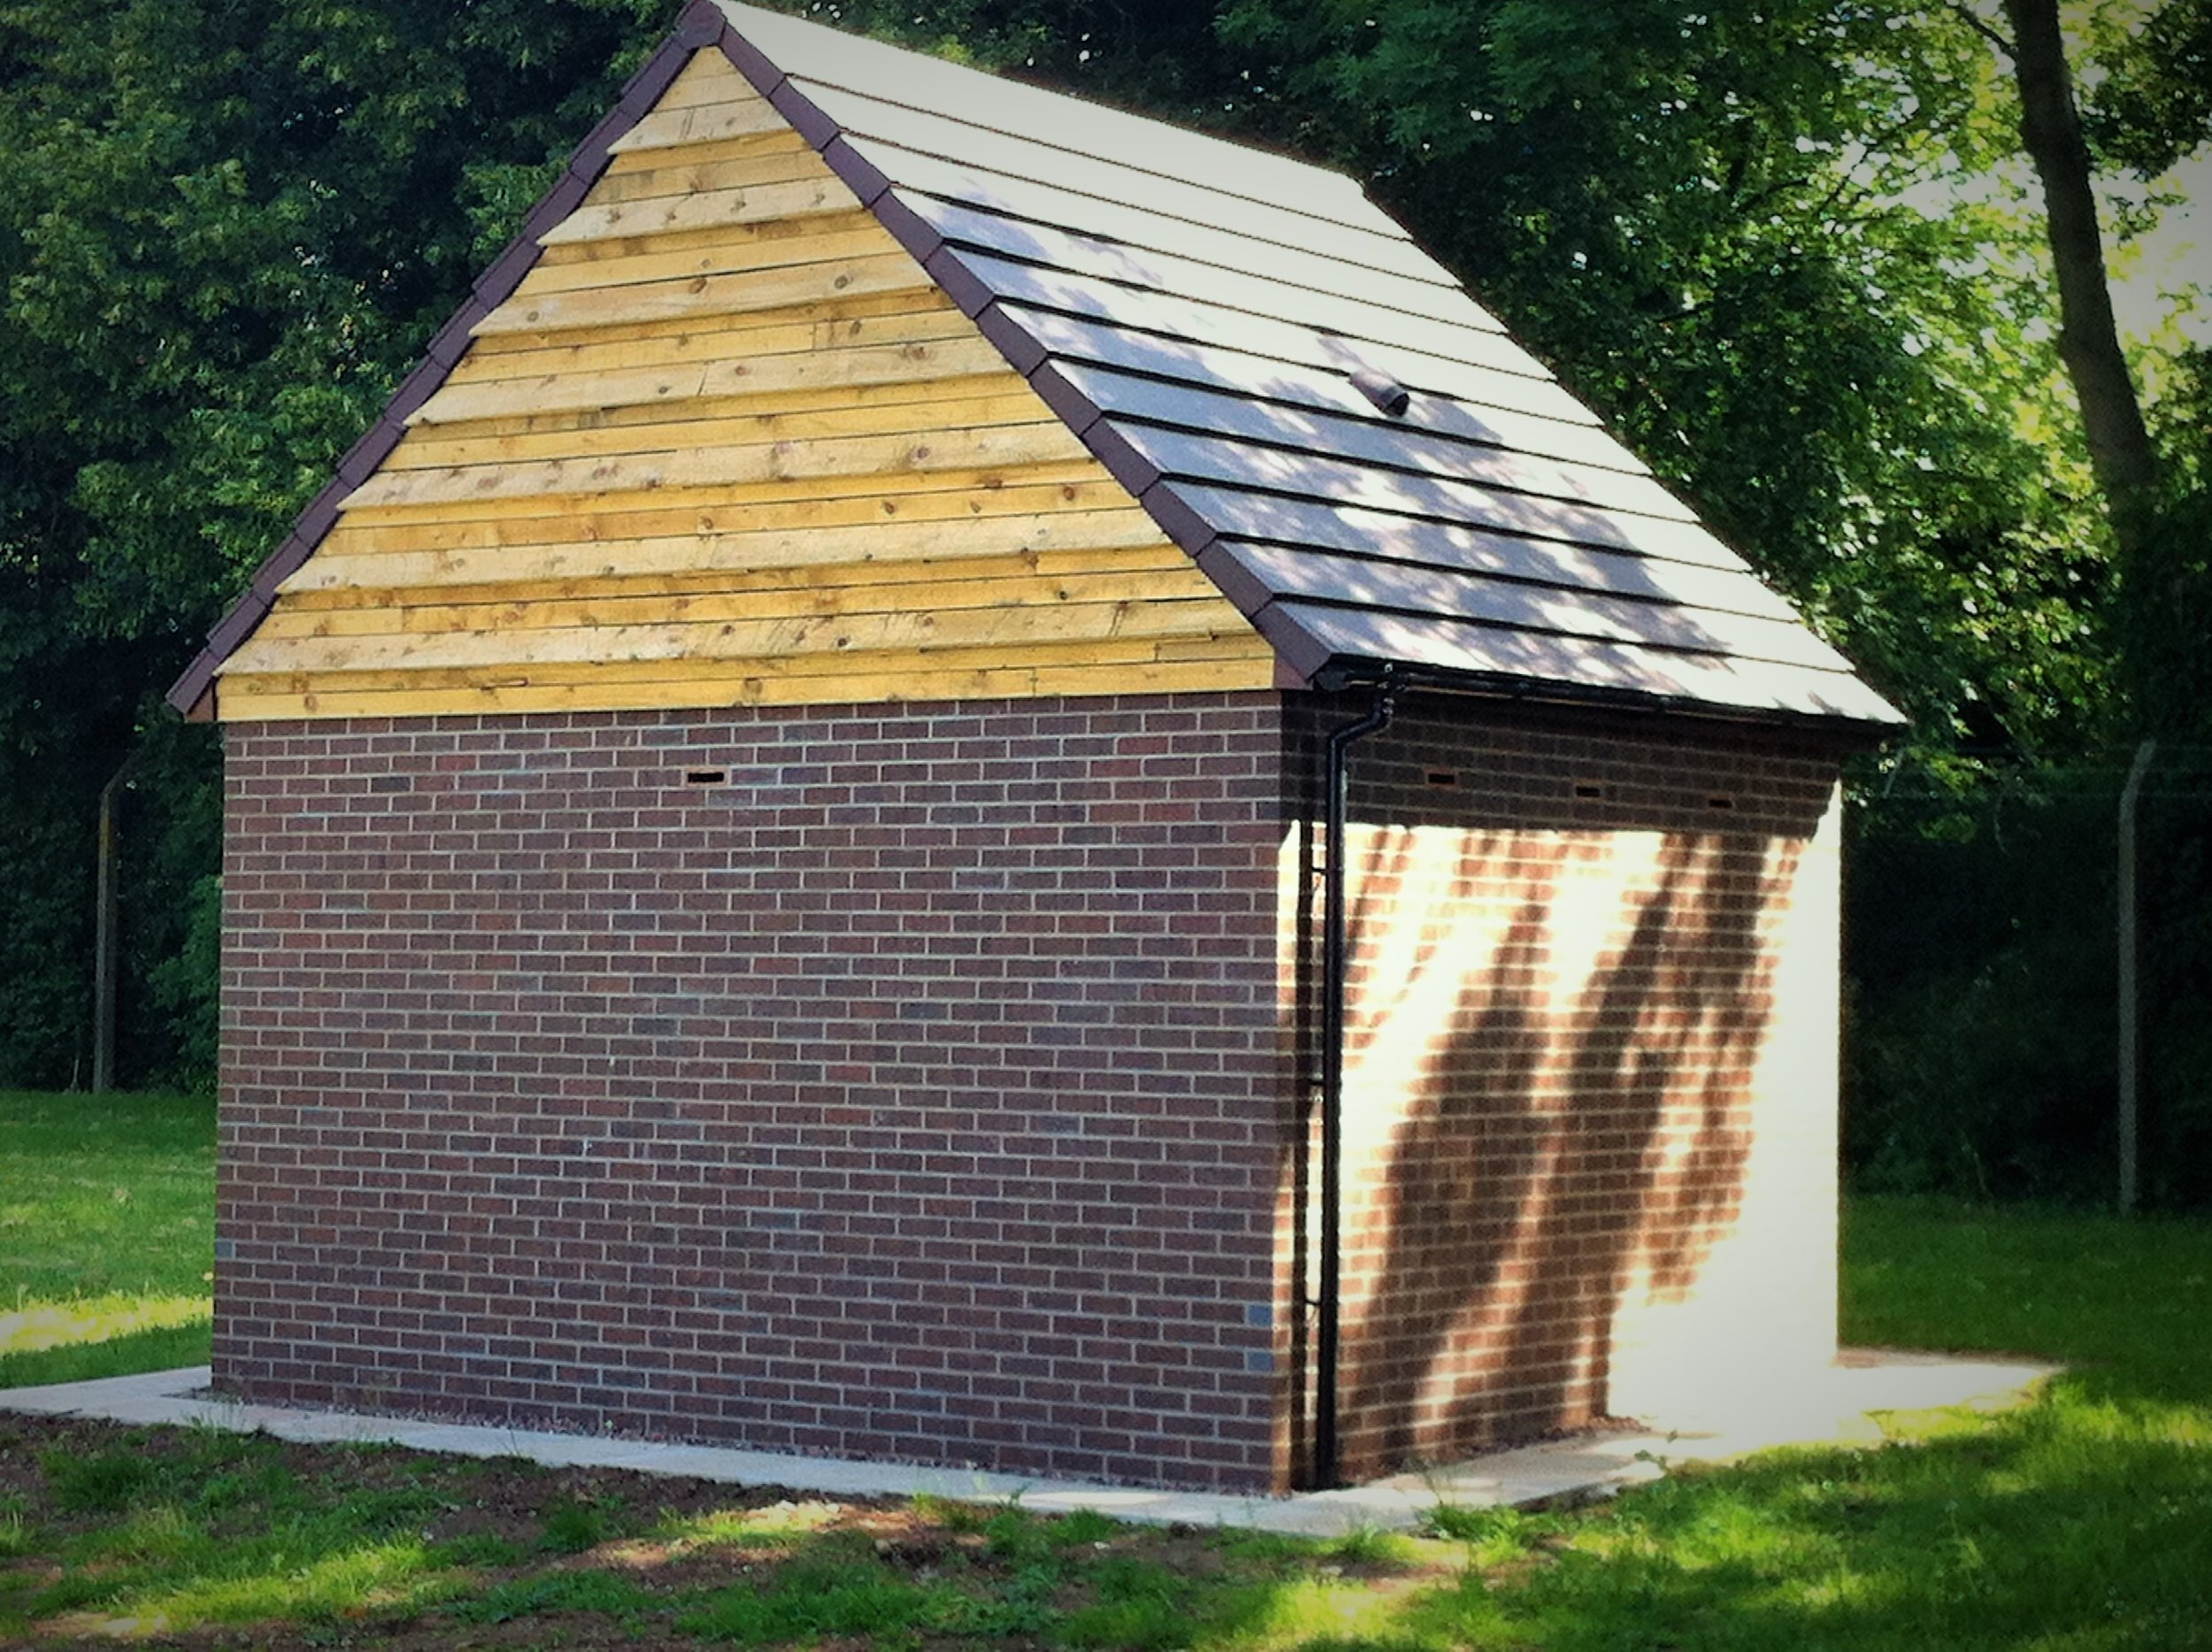 A bespoke bat house created as compensation for the loss of a bat maternity roost (photo: Matt Cook)